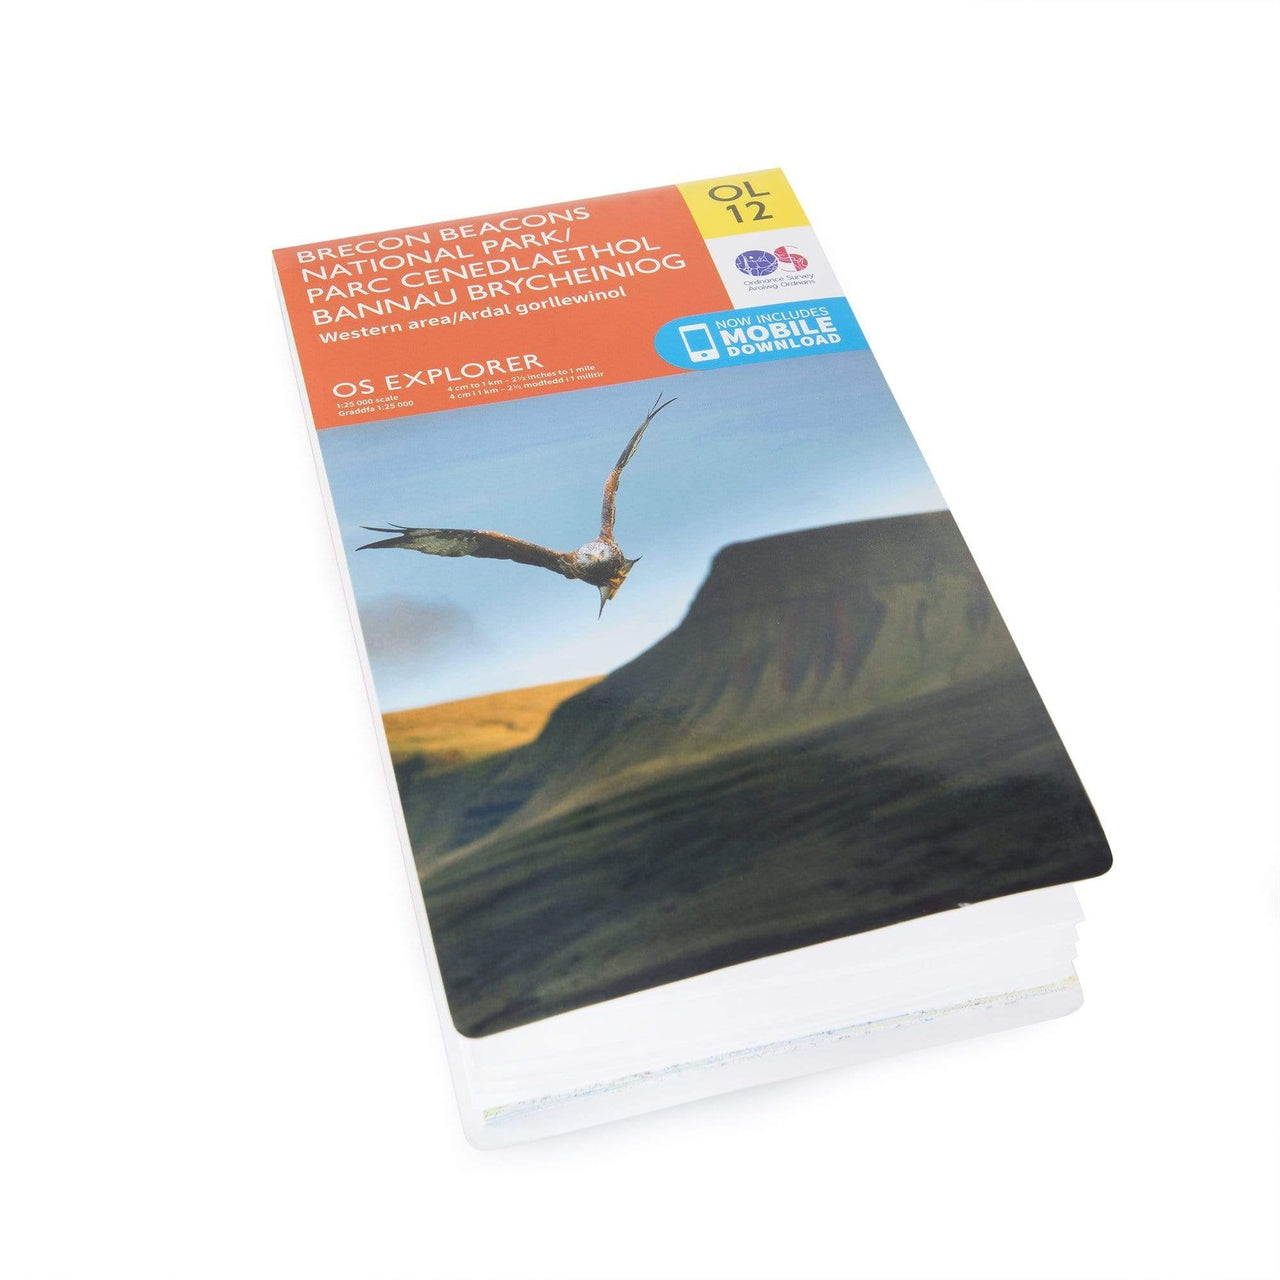 OS Explorer Maps: Brecon Beacons - West and Central